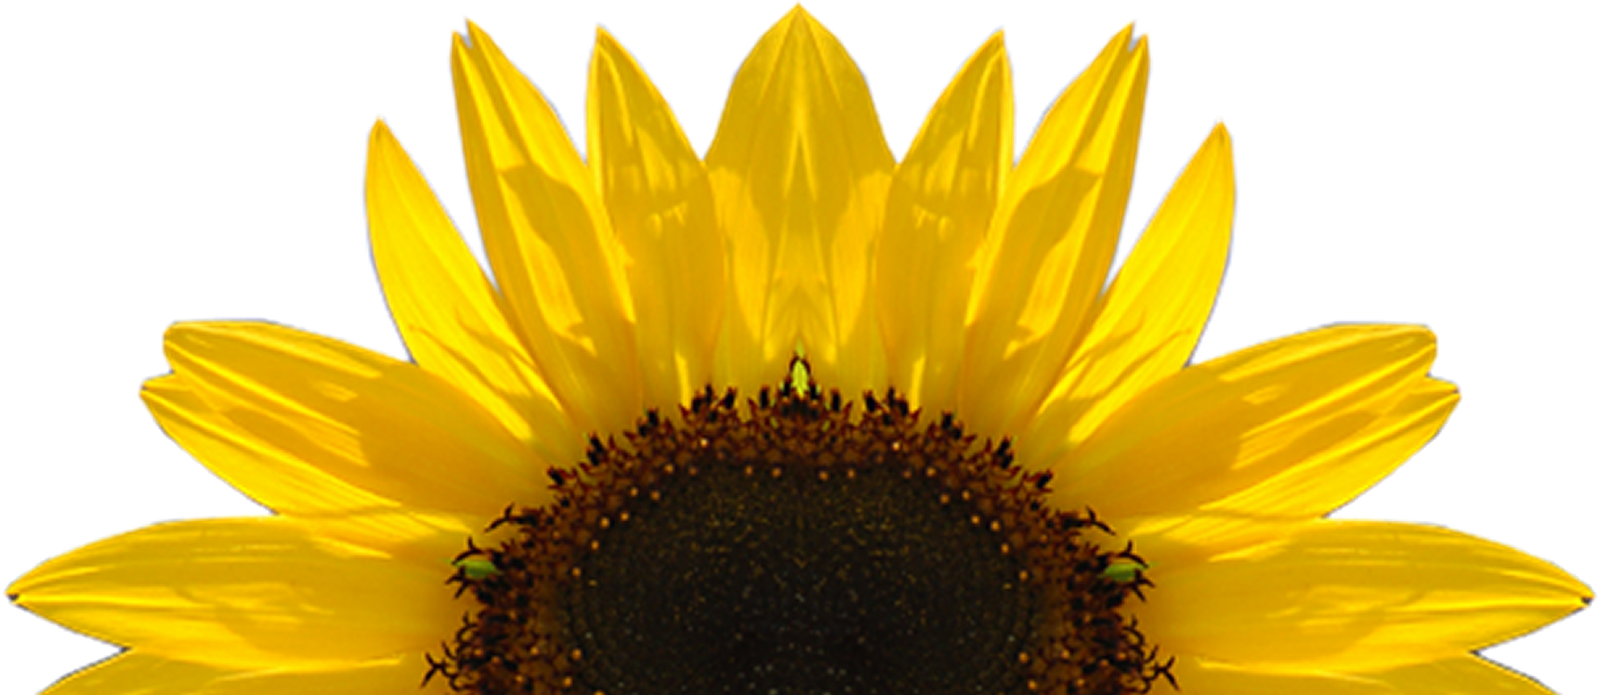 Sunflowers Png image #28740 - Sunflowers PNG